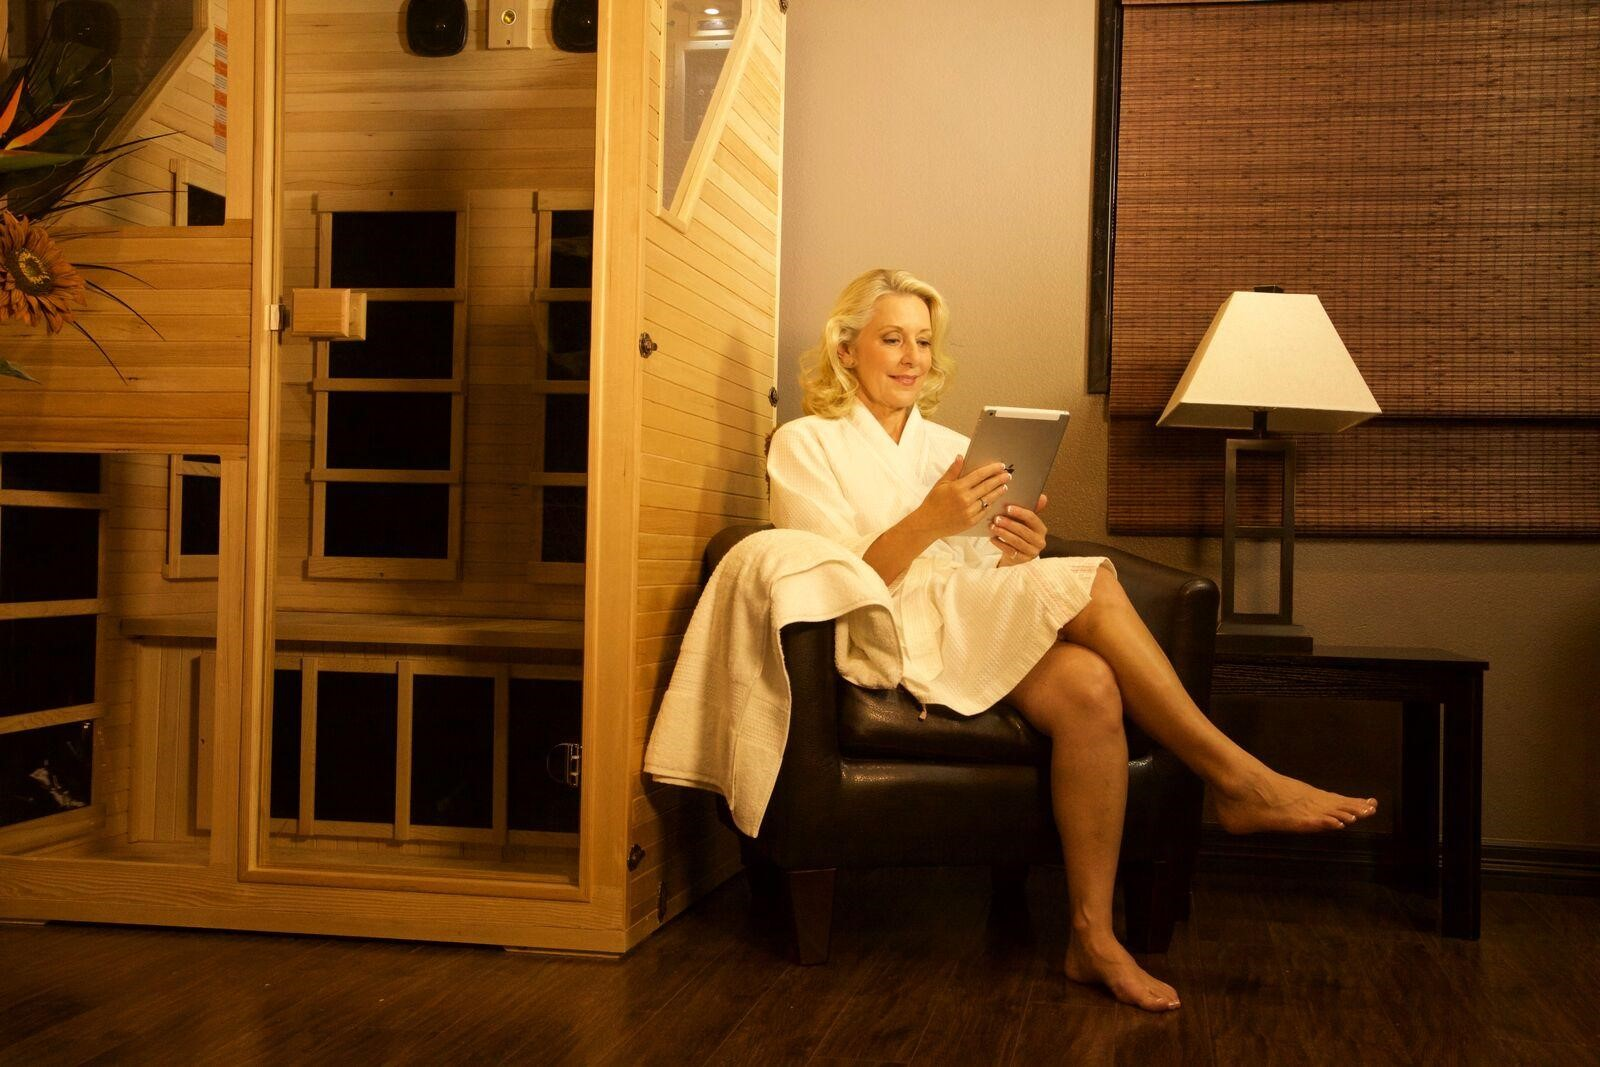 Research the Health Benefits of Using a Far-Infrared Sauna